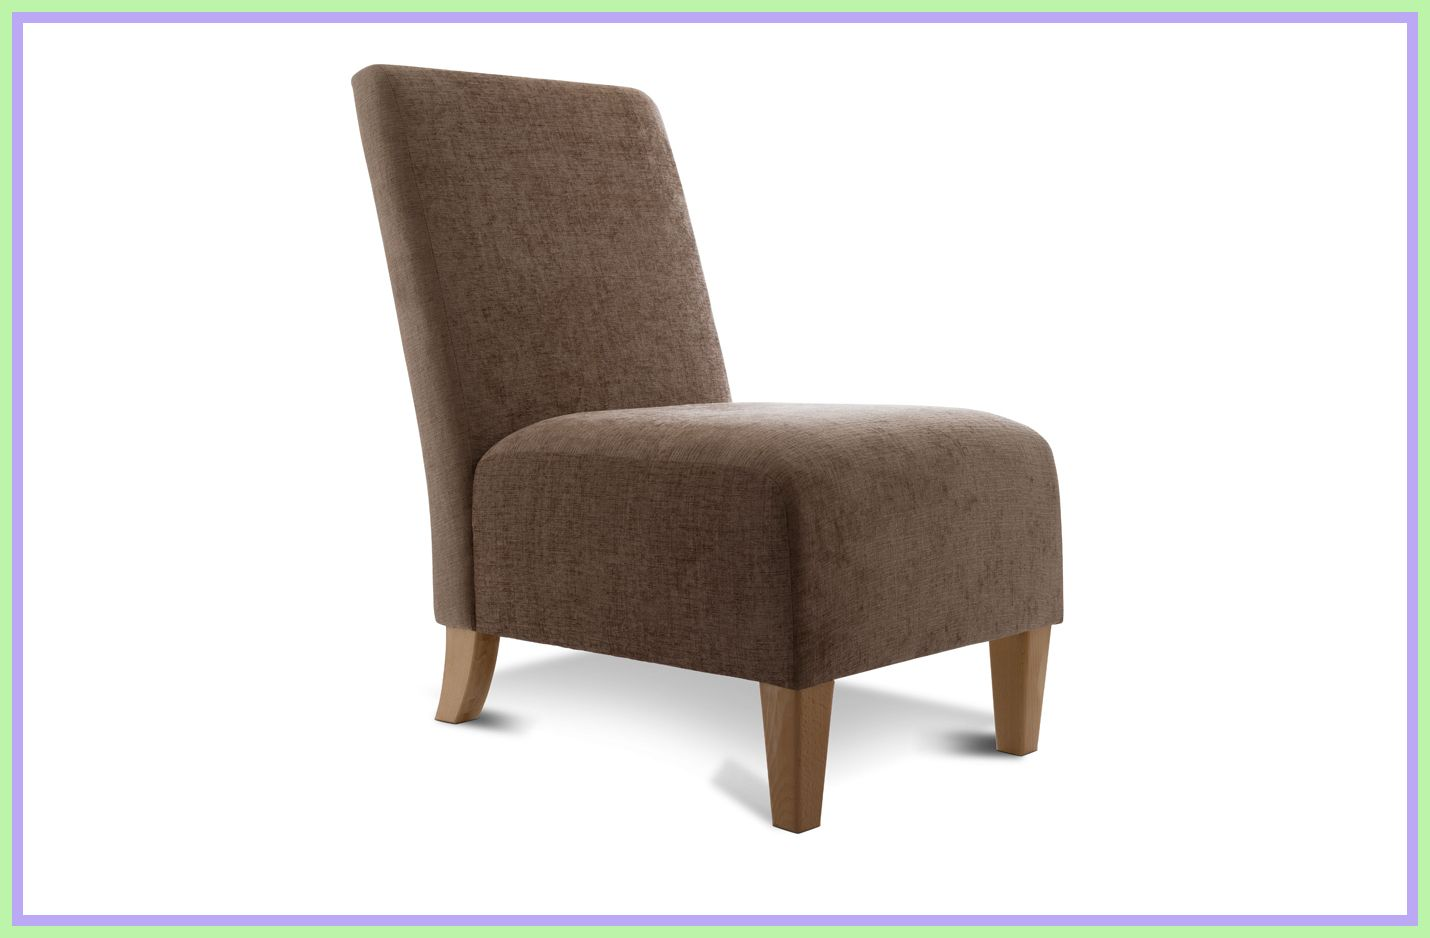 77 Reference Of Small Corner Chair For Bedroom Uk In 2020 Small Bedroom Sofa Small Apartment Furniture Sofa Uk